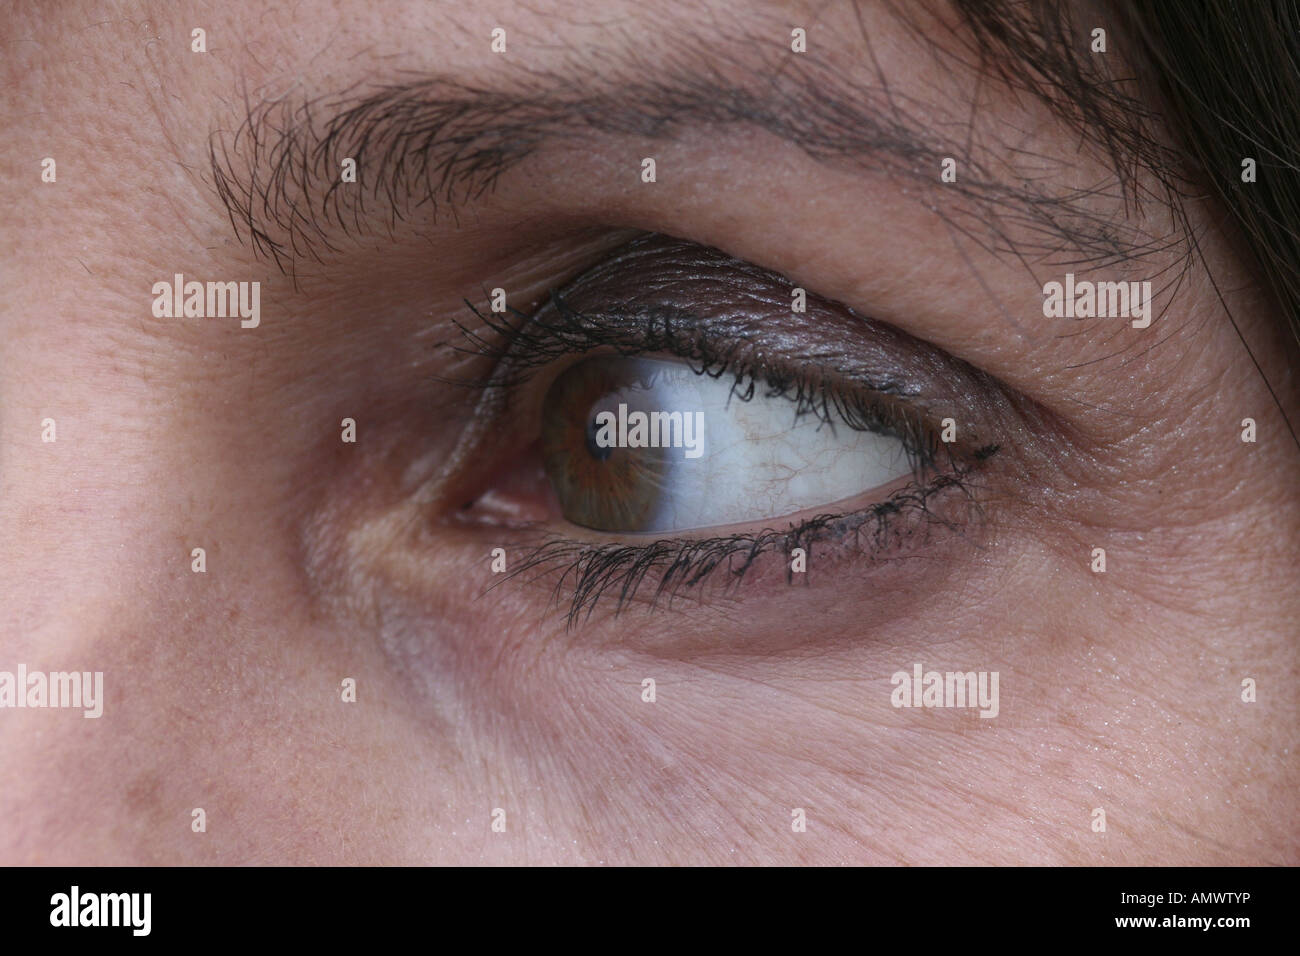 eye with contact lens - Stock Image